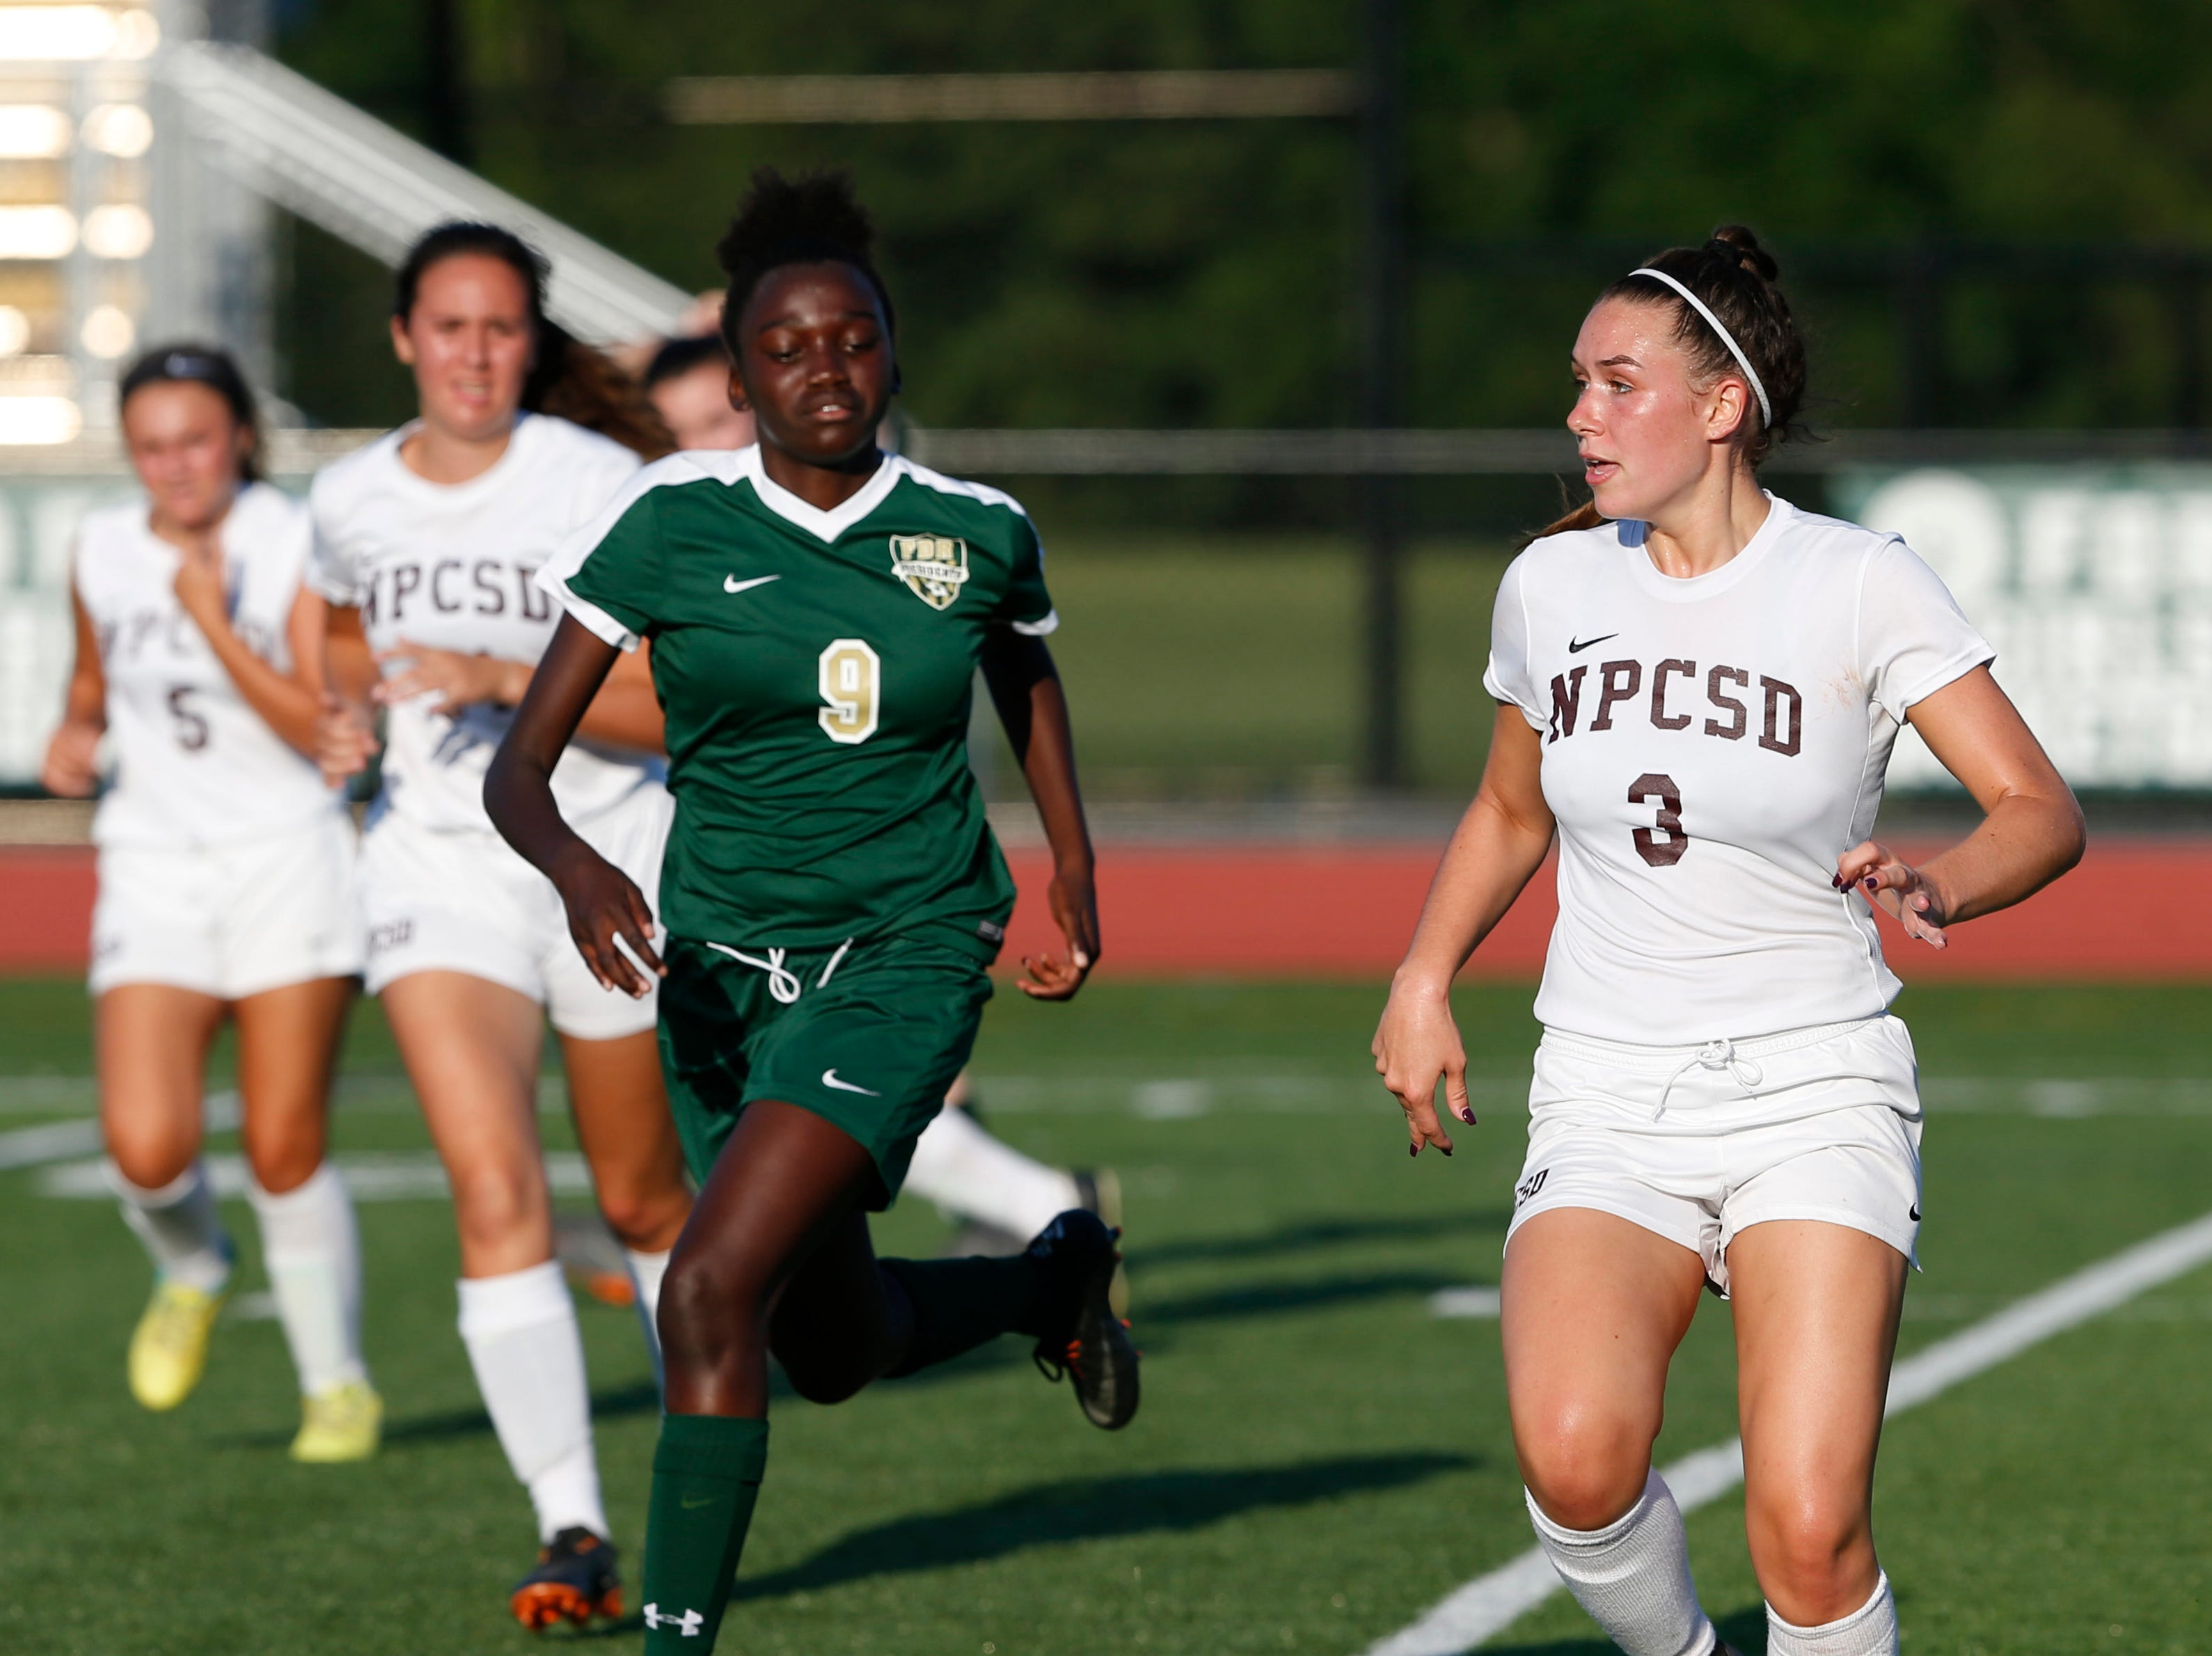 New Paltz's Taylor Bruck looks to pass the ball ahead of FDR's Marissa Velez during Wednesday's game in Hyde Park on September 5, 2018.